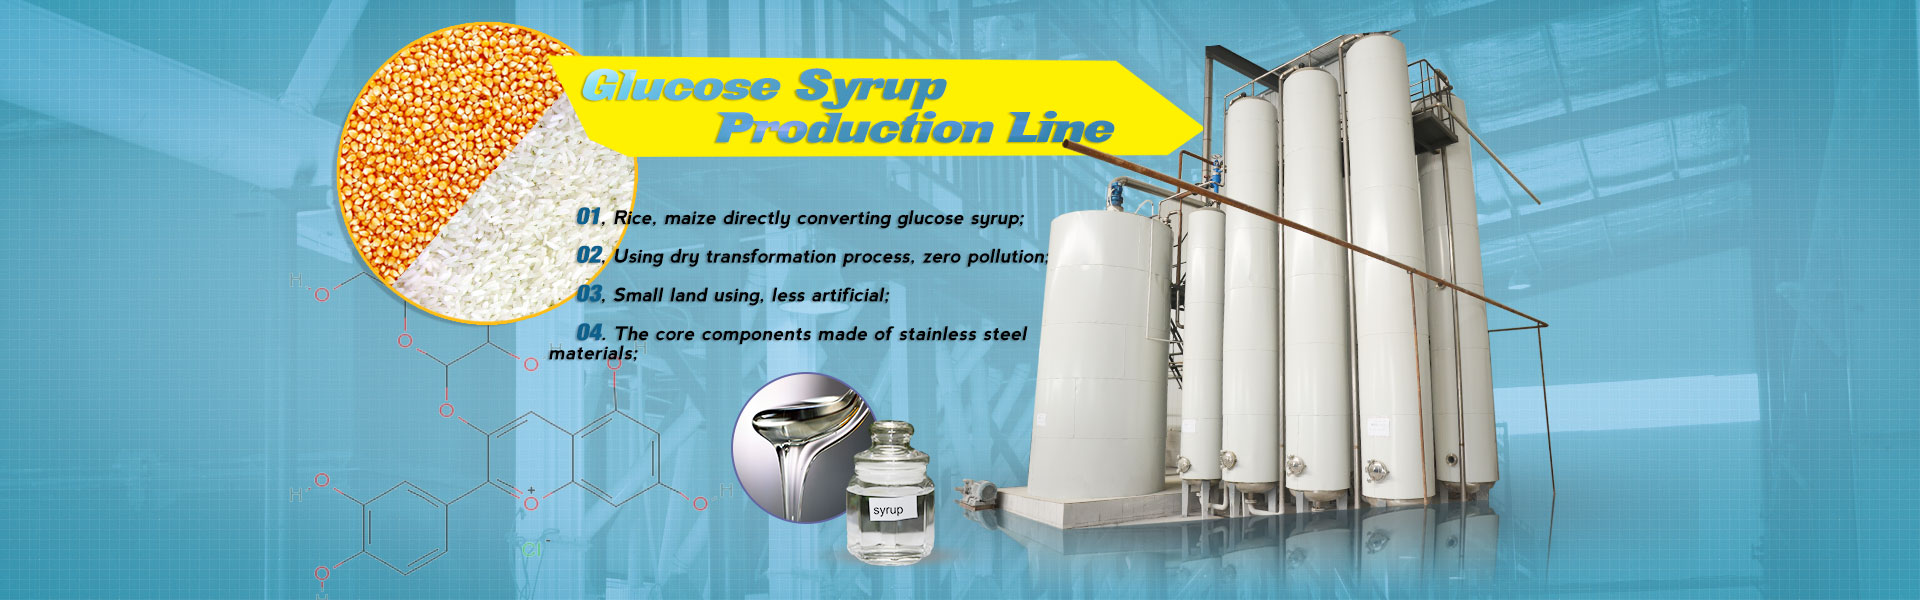 Syrup processing plant